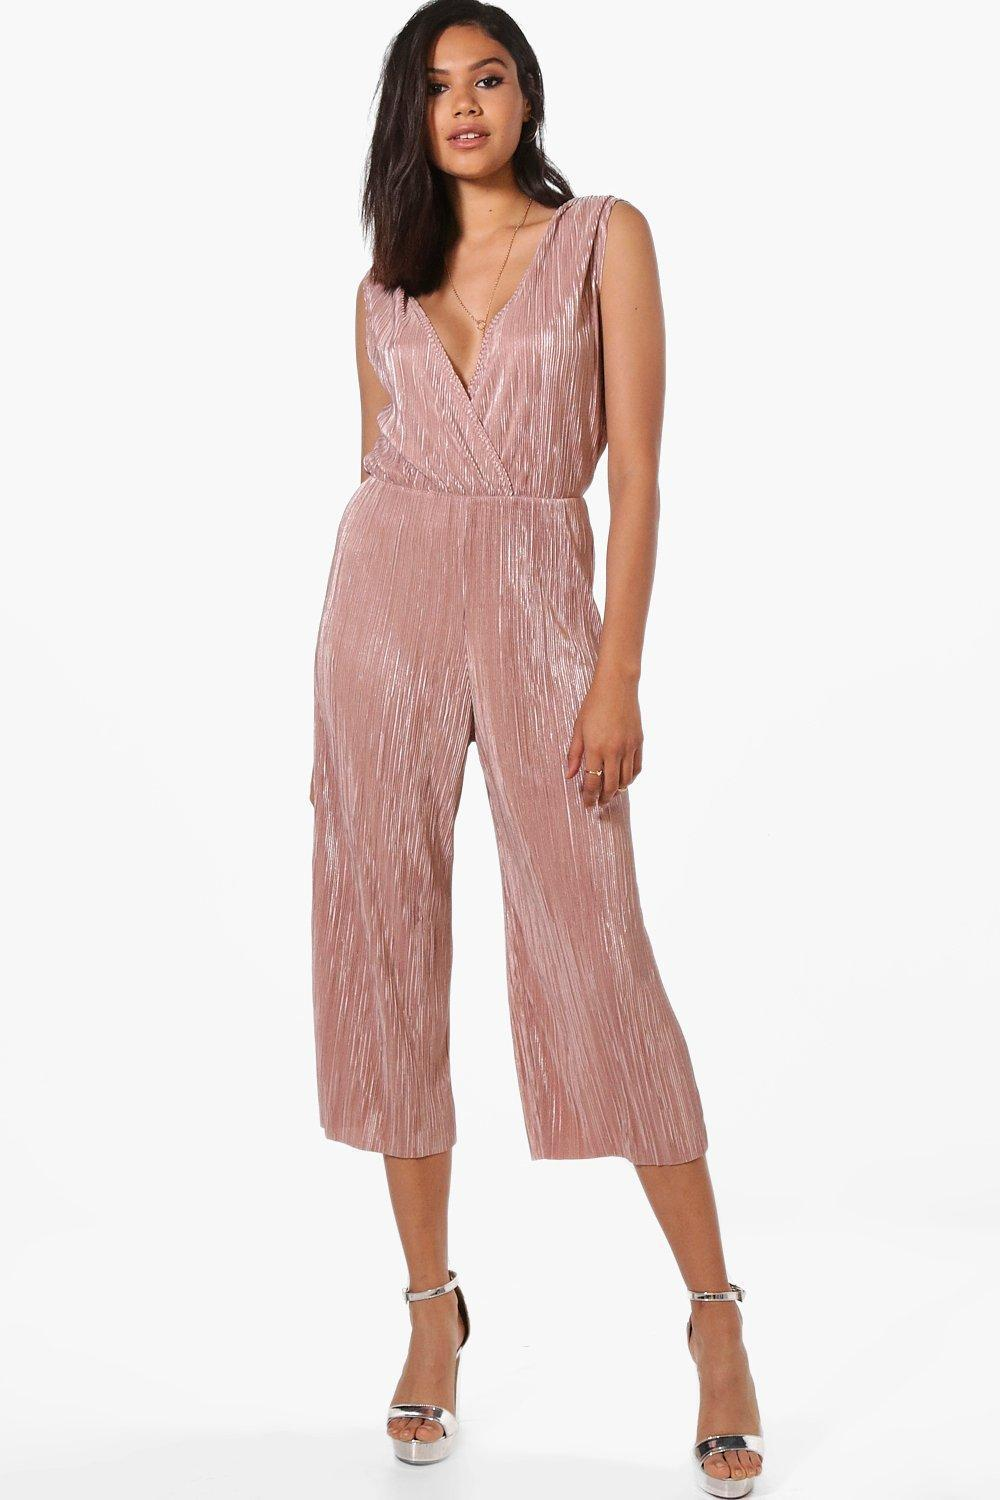 527a1447ca Lyst - Boohoo Wrap Front Plisse Culotte Jumpsuit in Pink